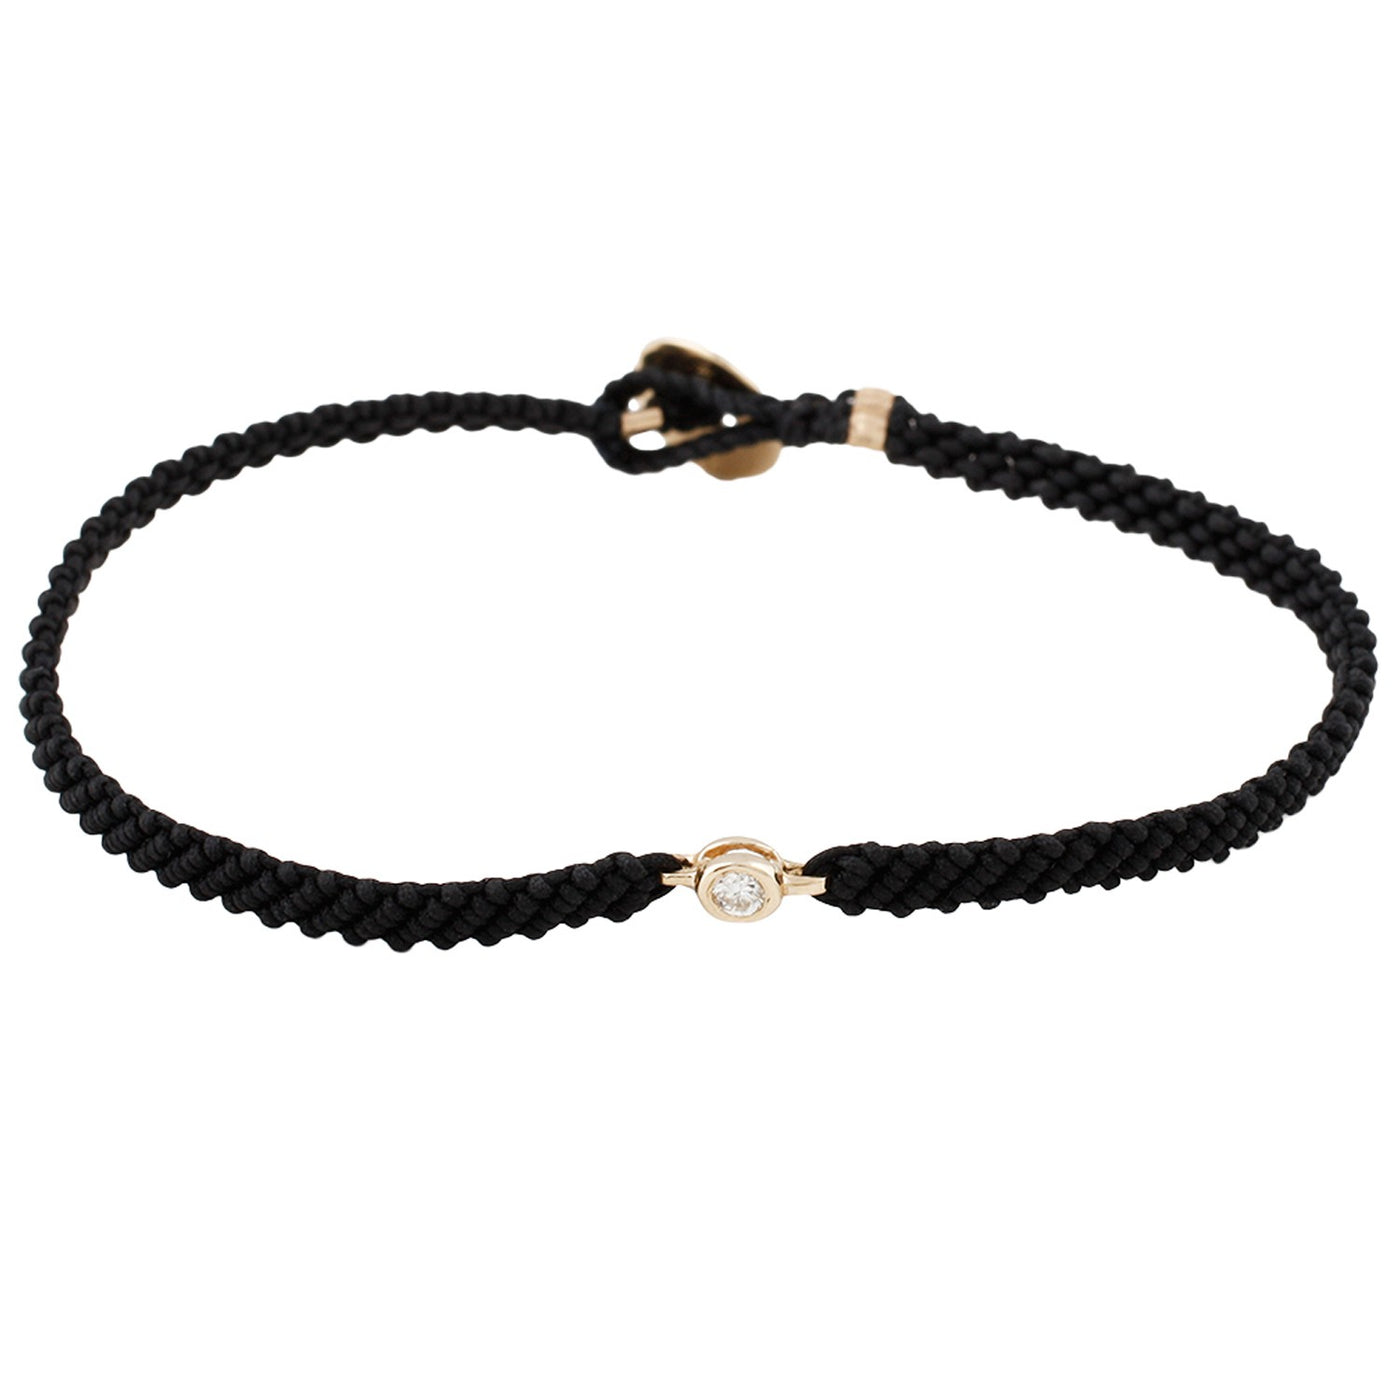 Scosha Diamond Friendship Bracelet